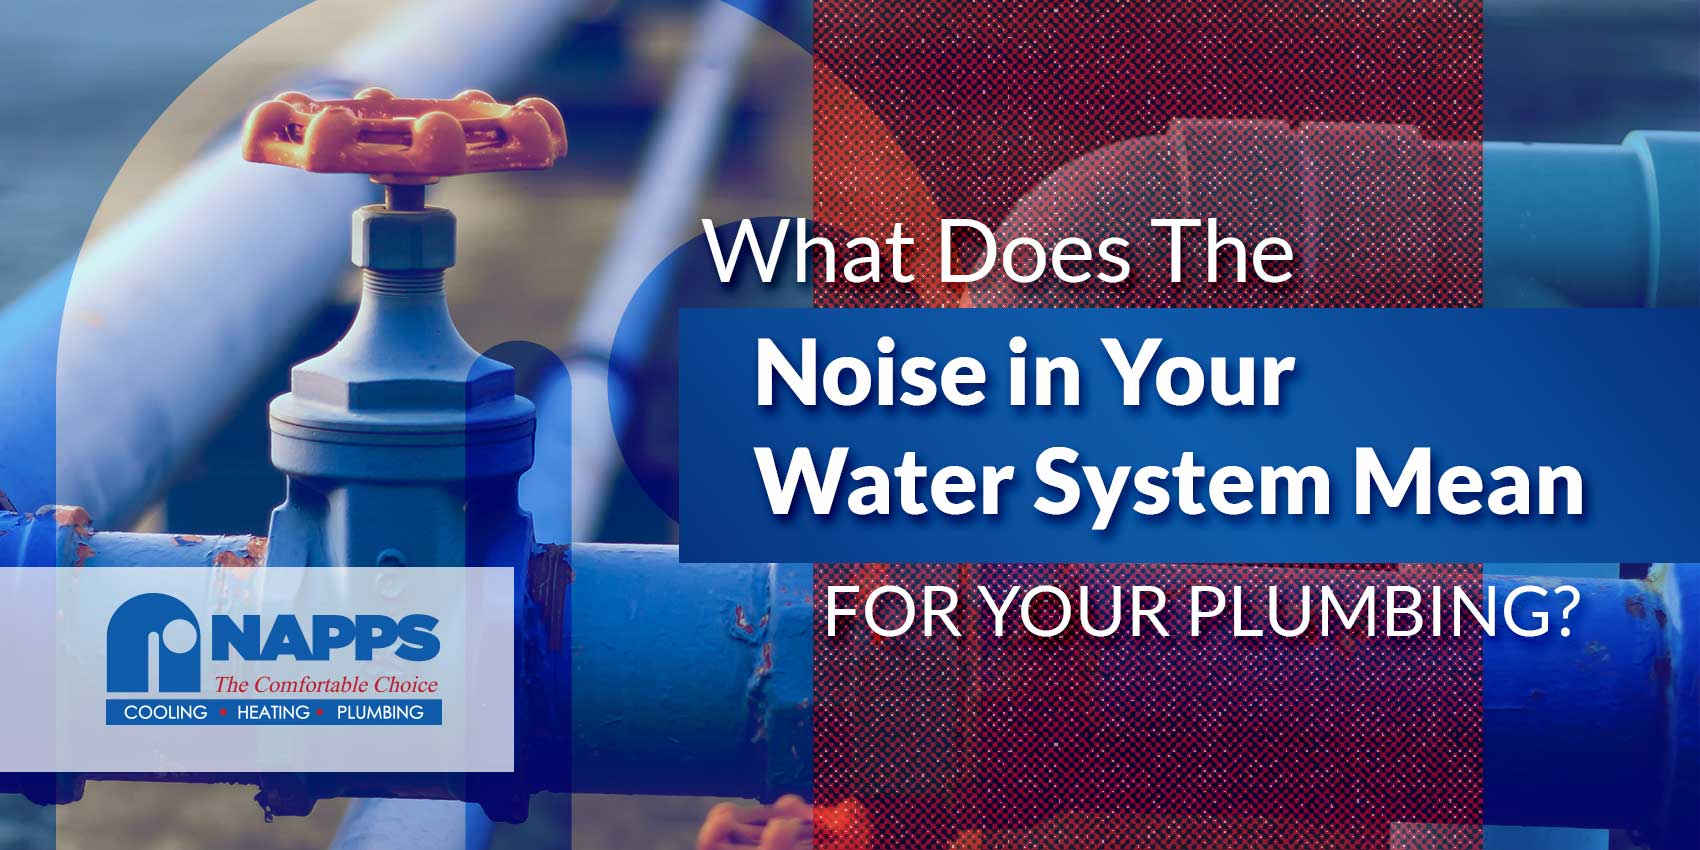 What Does The Noise in Your Water System Mean For Your Plumbing?